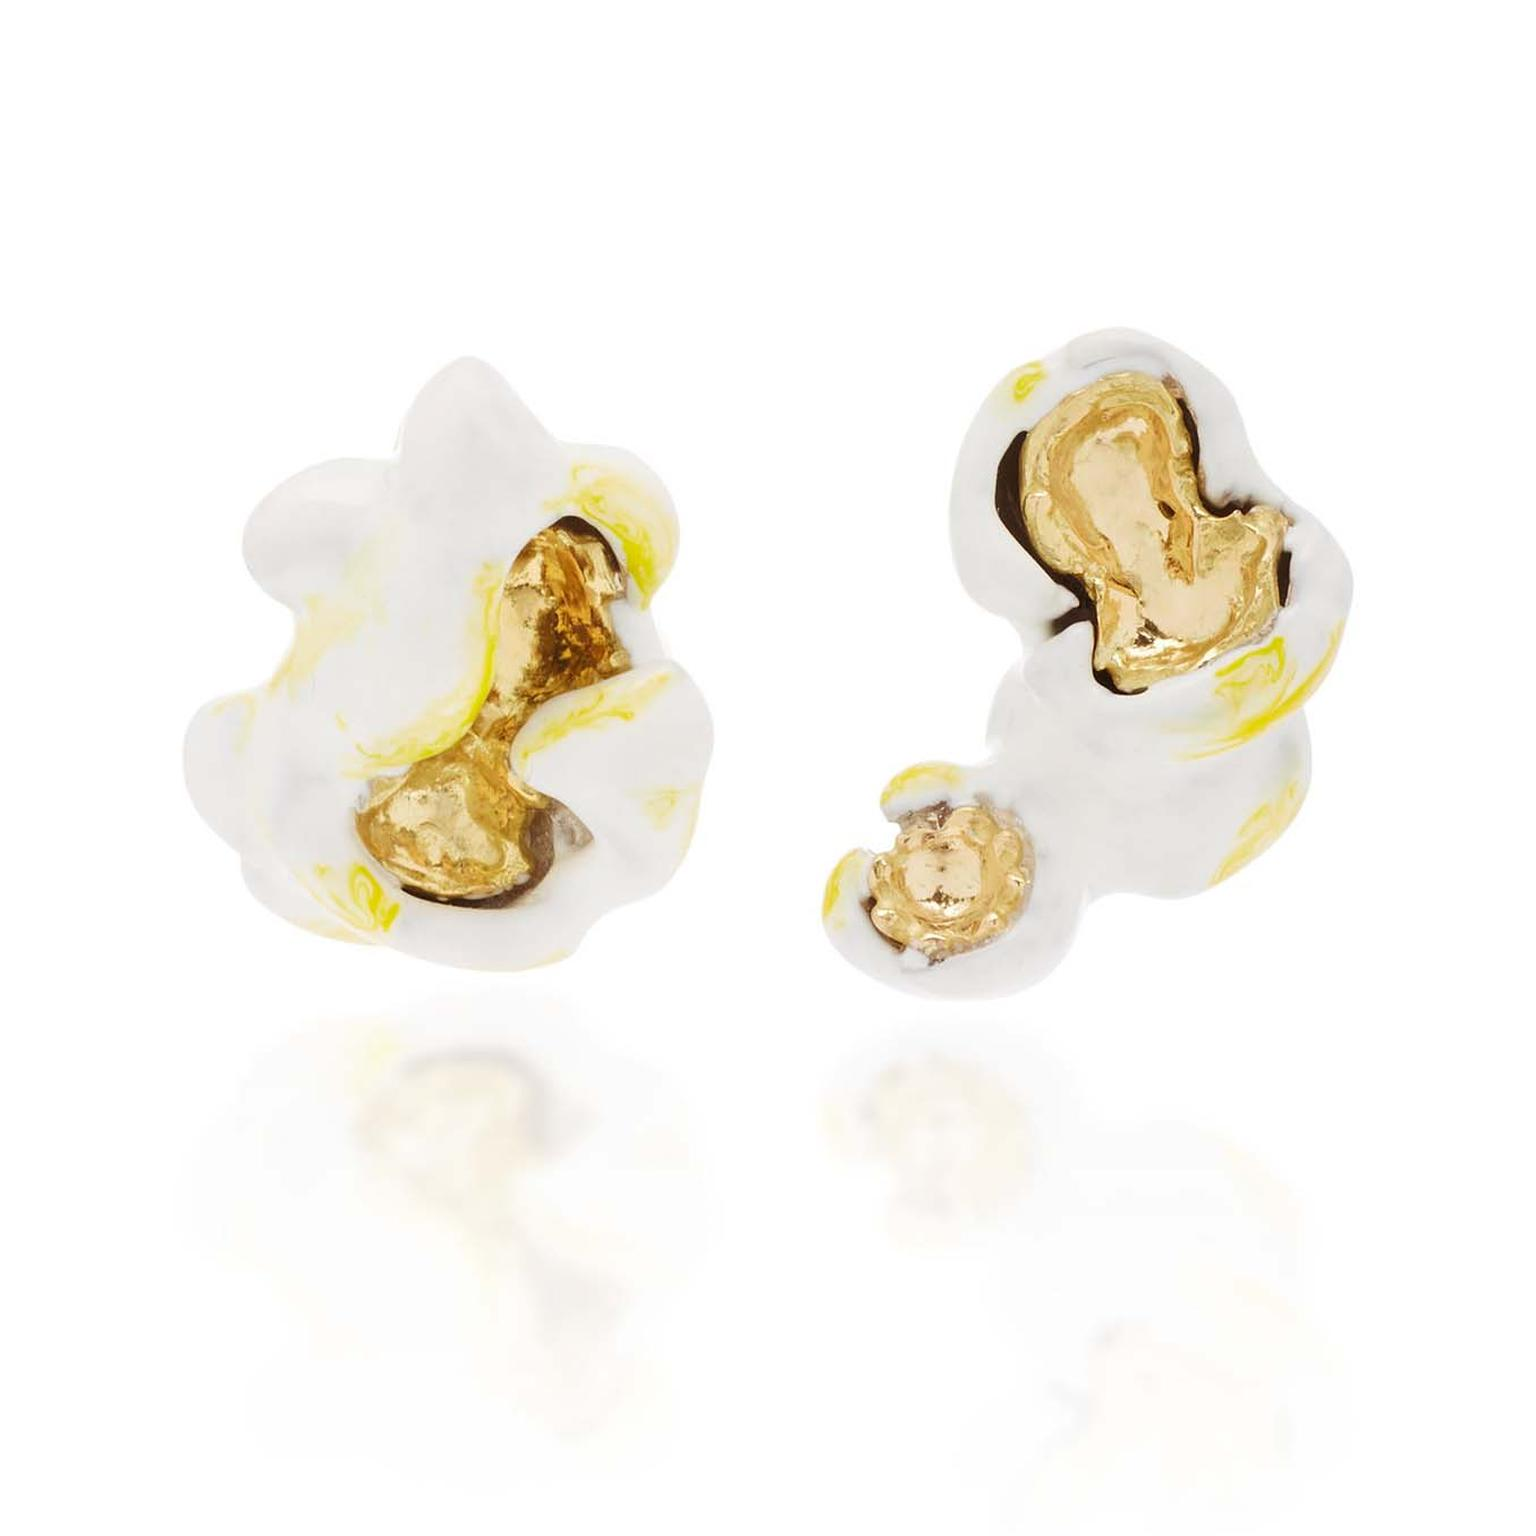 Luz Camino Pop Corn earrings